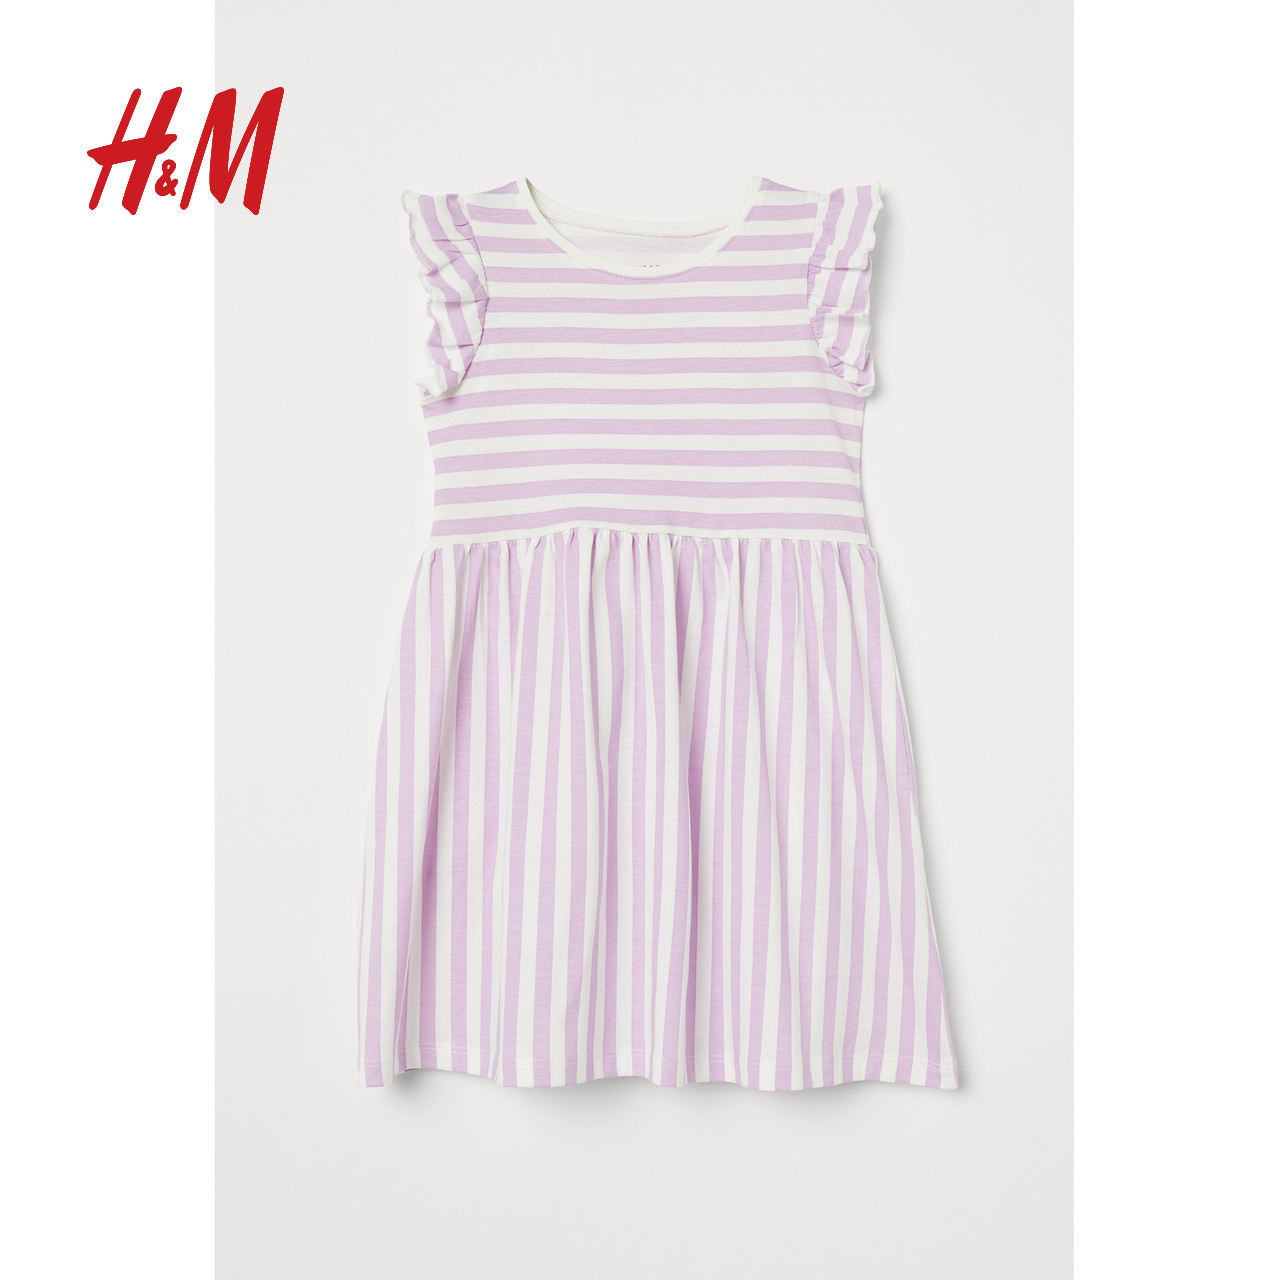 HM children's dress girl's skirt sleeveless vest skirt 2020 new pure cotton westernized children's dress 0620197